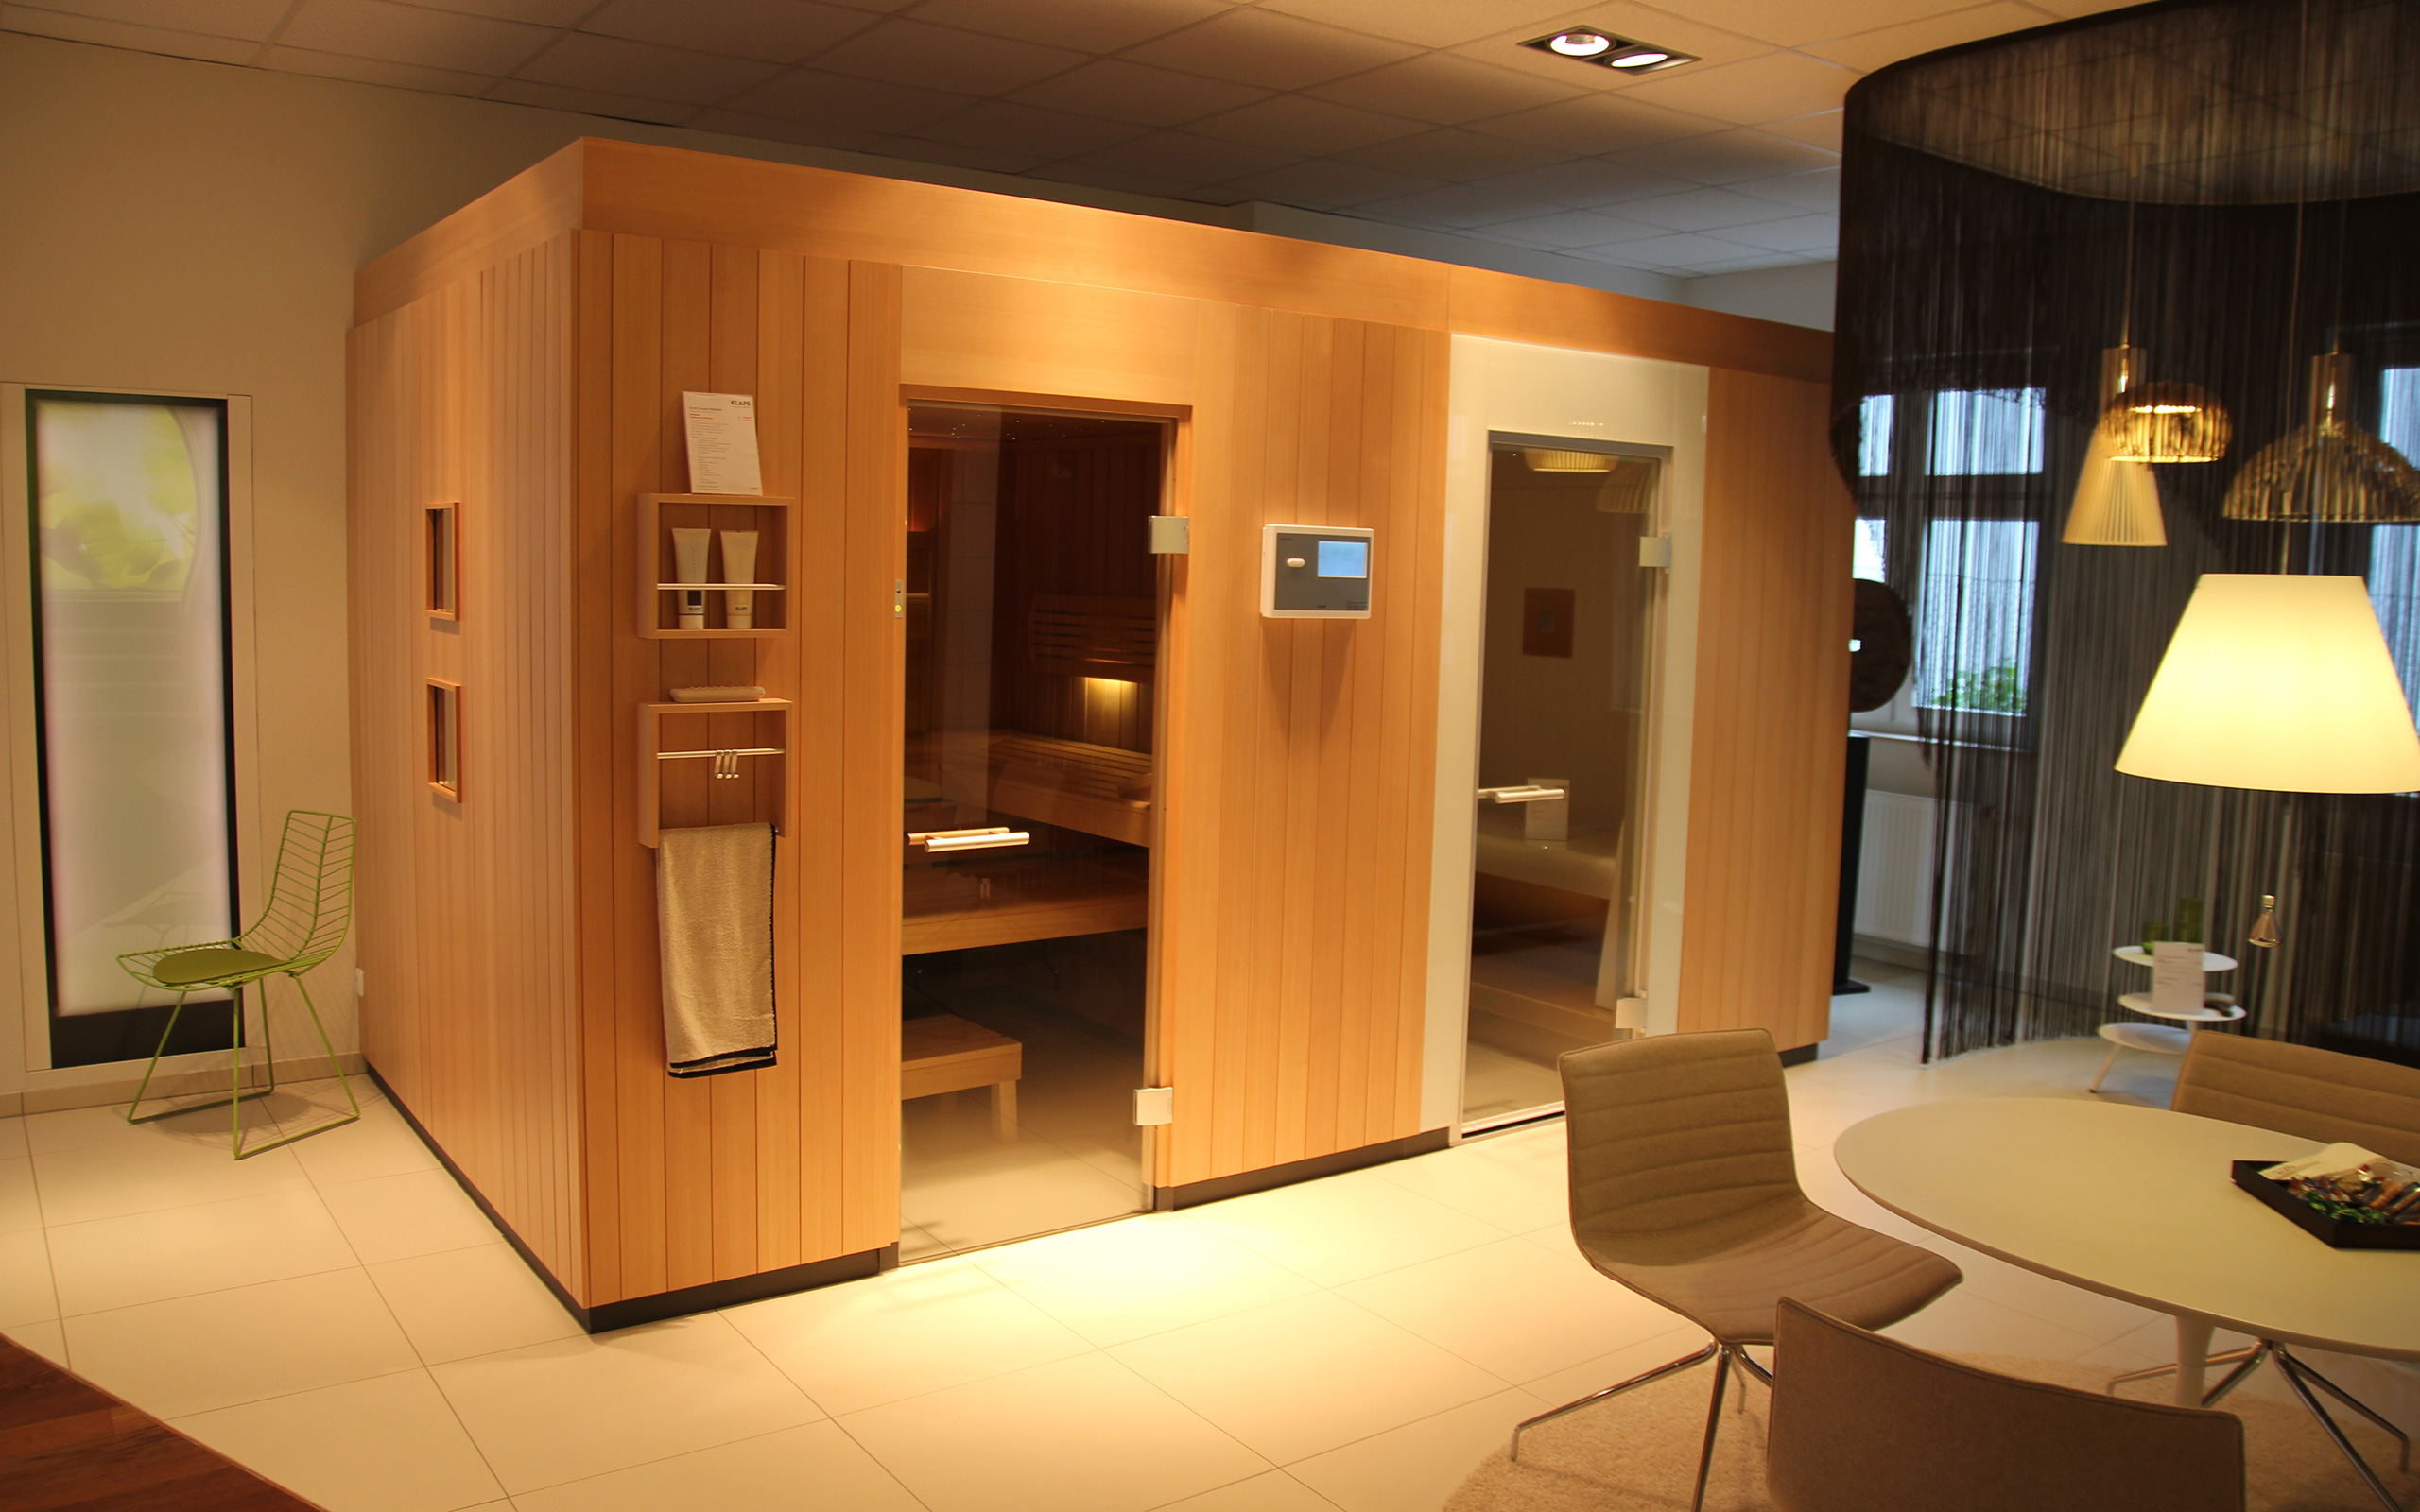 sauna ausstellung in k ln. Black Bedroom Furniture Sets. Home Design Ideas